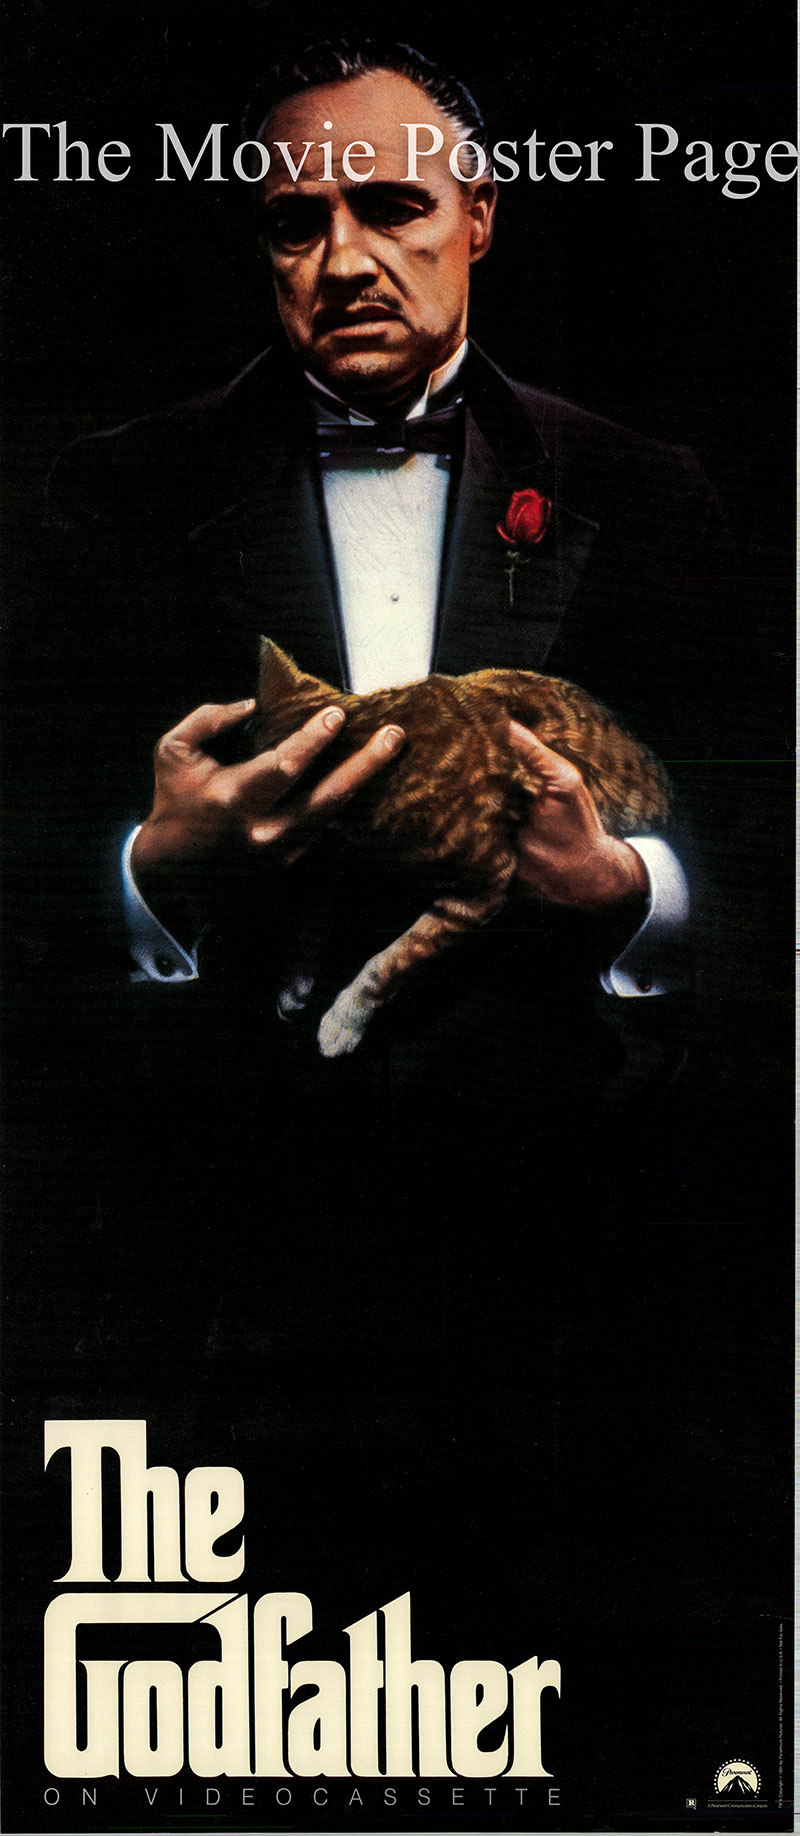 Pictured is a video door panel promotional poster for a 1991 rerelease of the 1972 Francis Ford Coppola film The Godfather starring Marlon Brando.